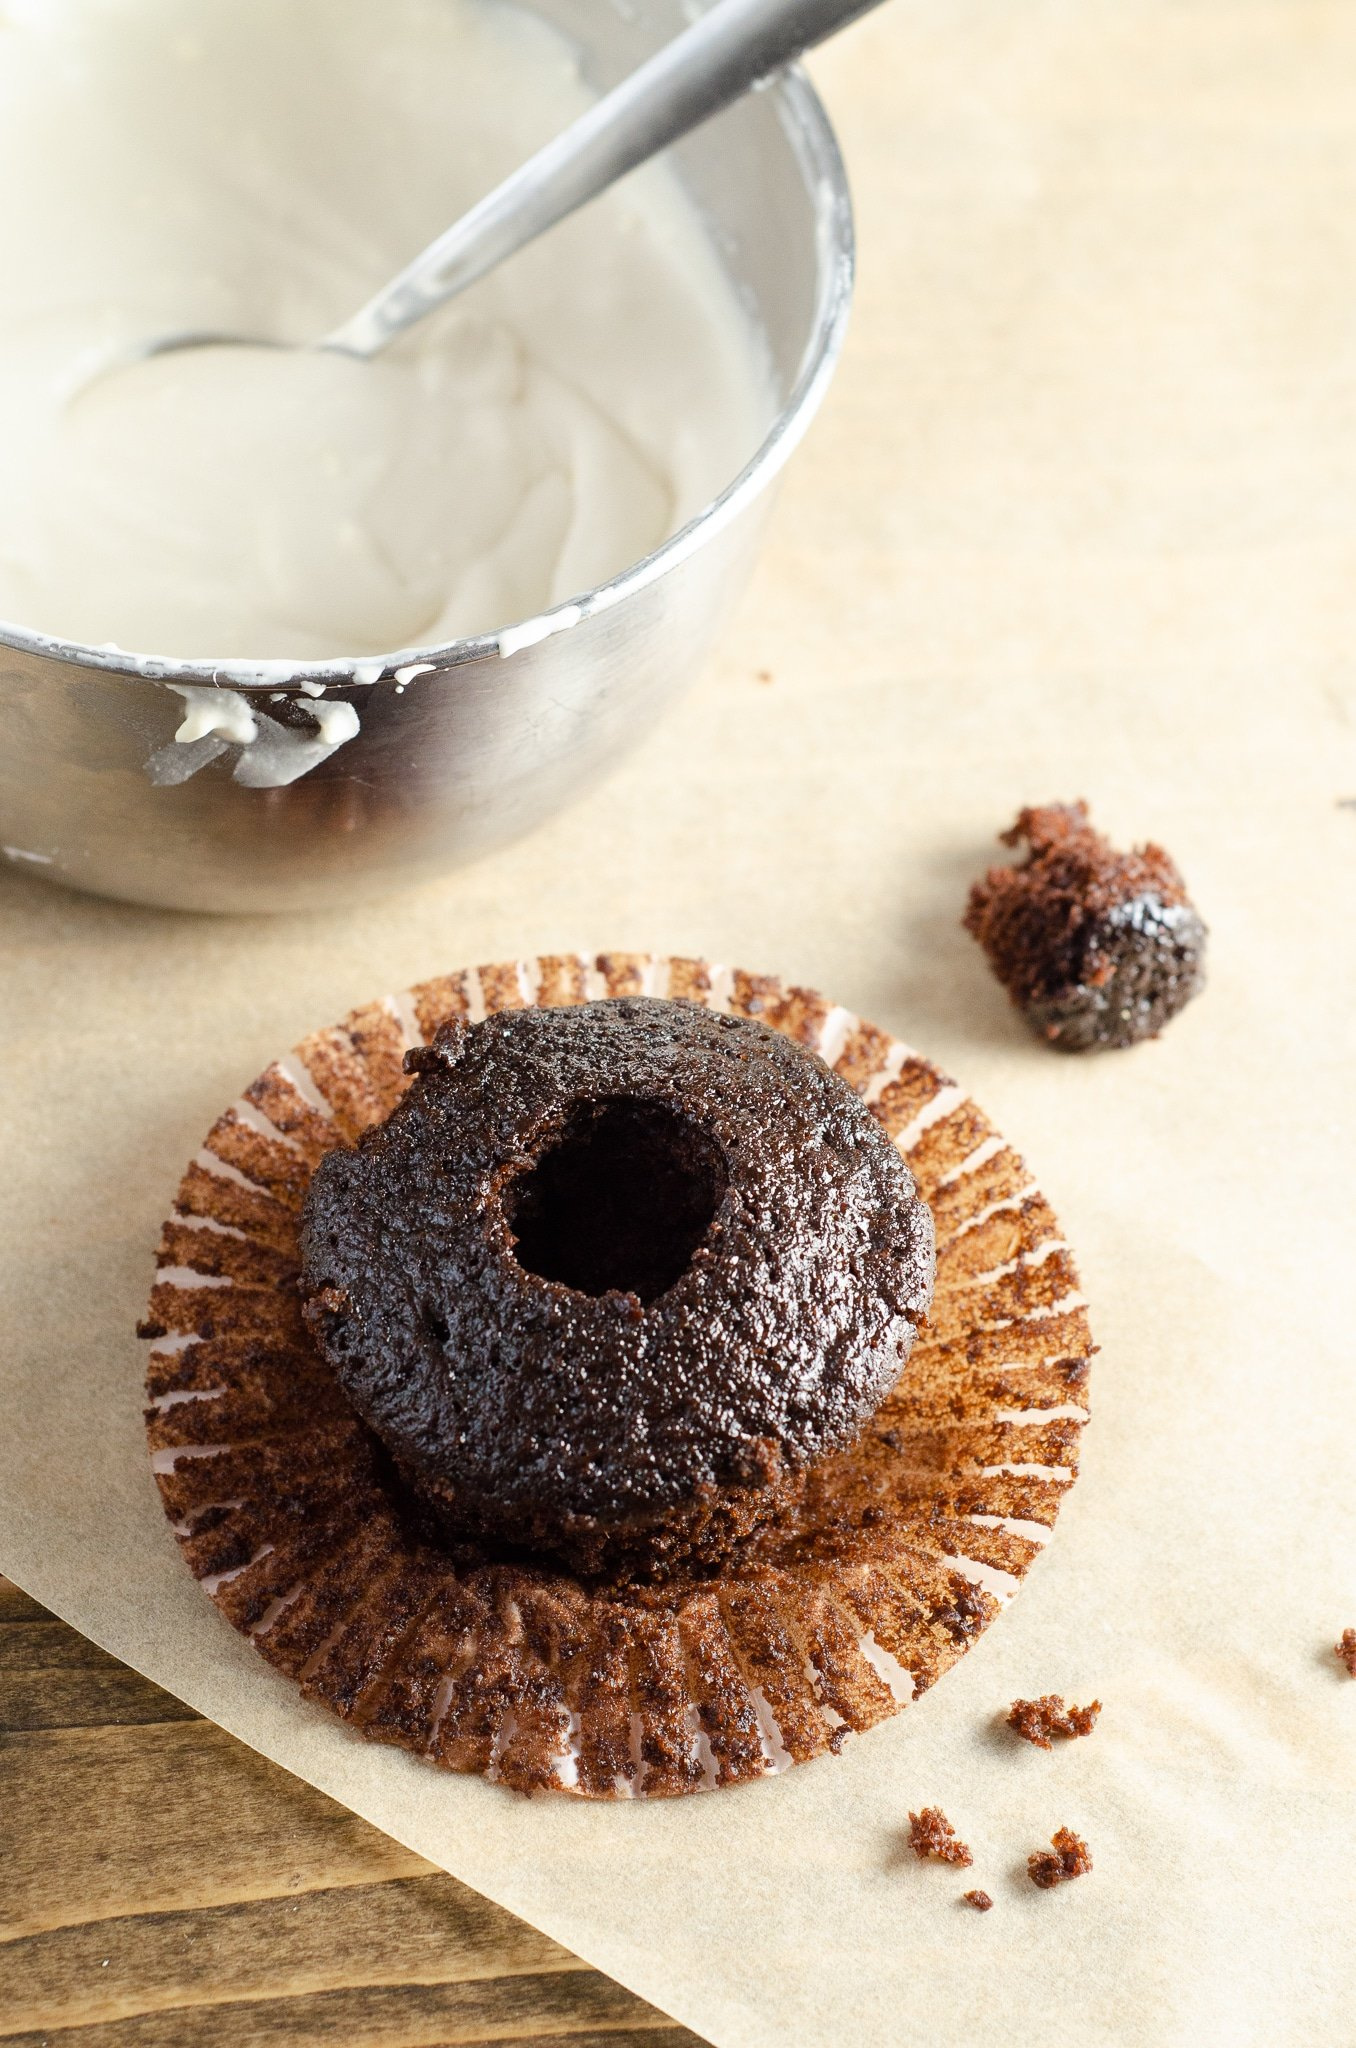 Chocolate Cupcake With Creme Filling. Sink your teeth into a childhood favorite cupcake that is as easy to bake as it is to eat. My Chocolate cupcakes with Chocolate Buttercream frosting and marshmallow creme filling will make the kid in you cheer.